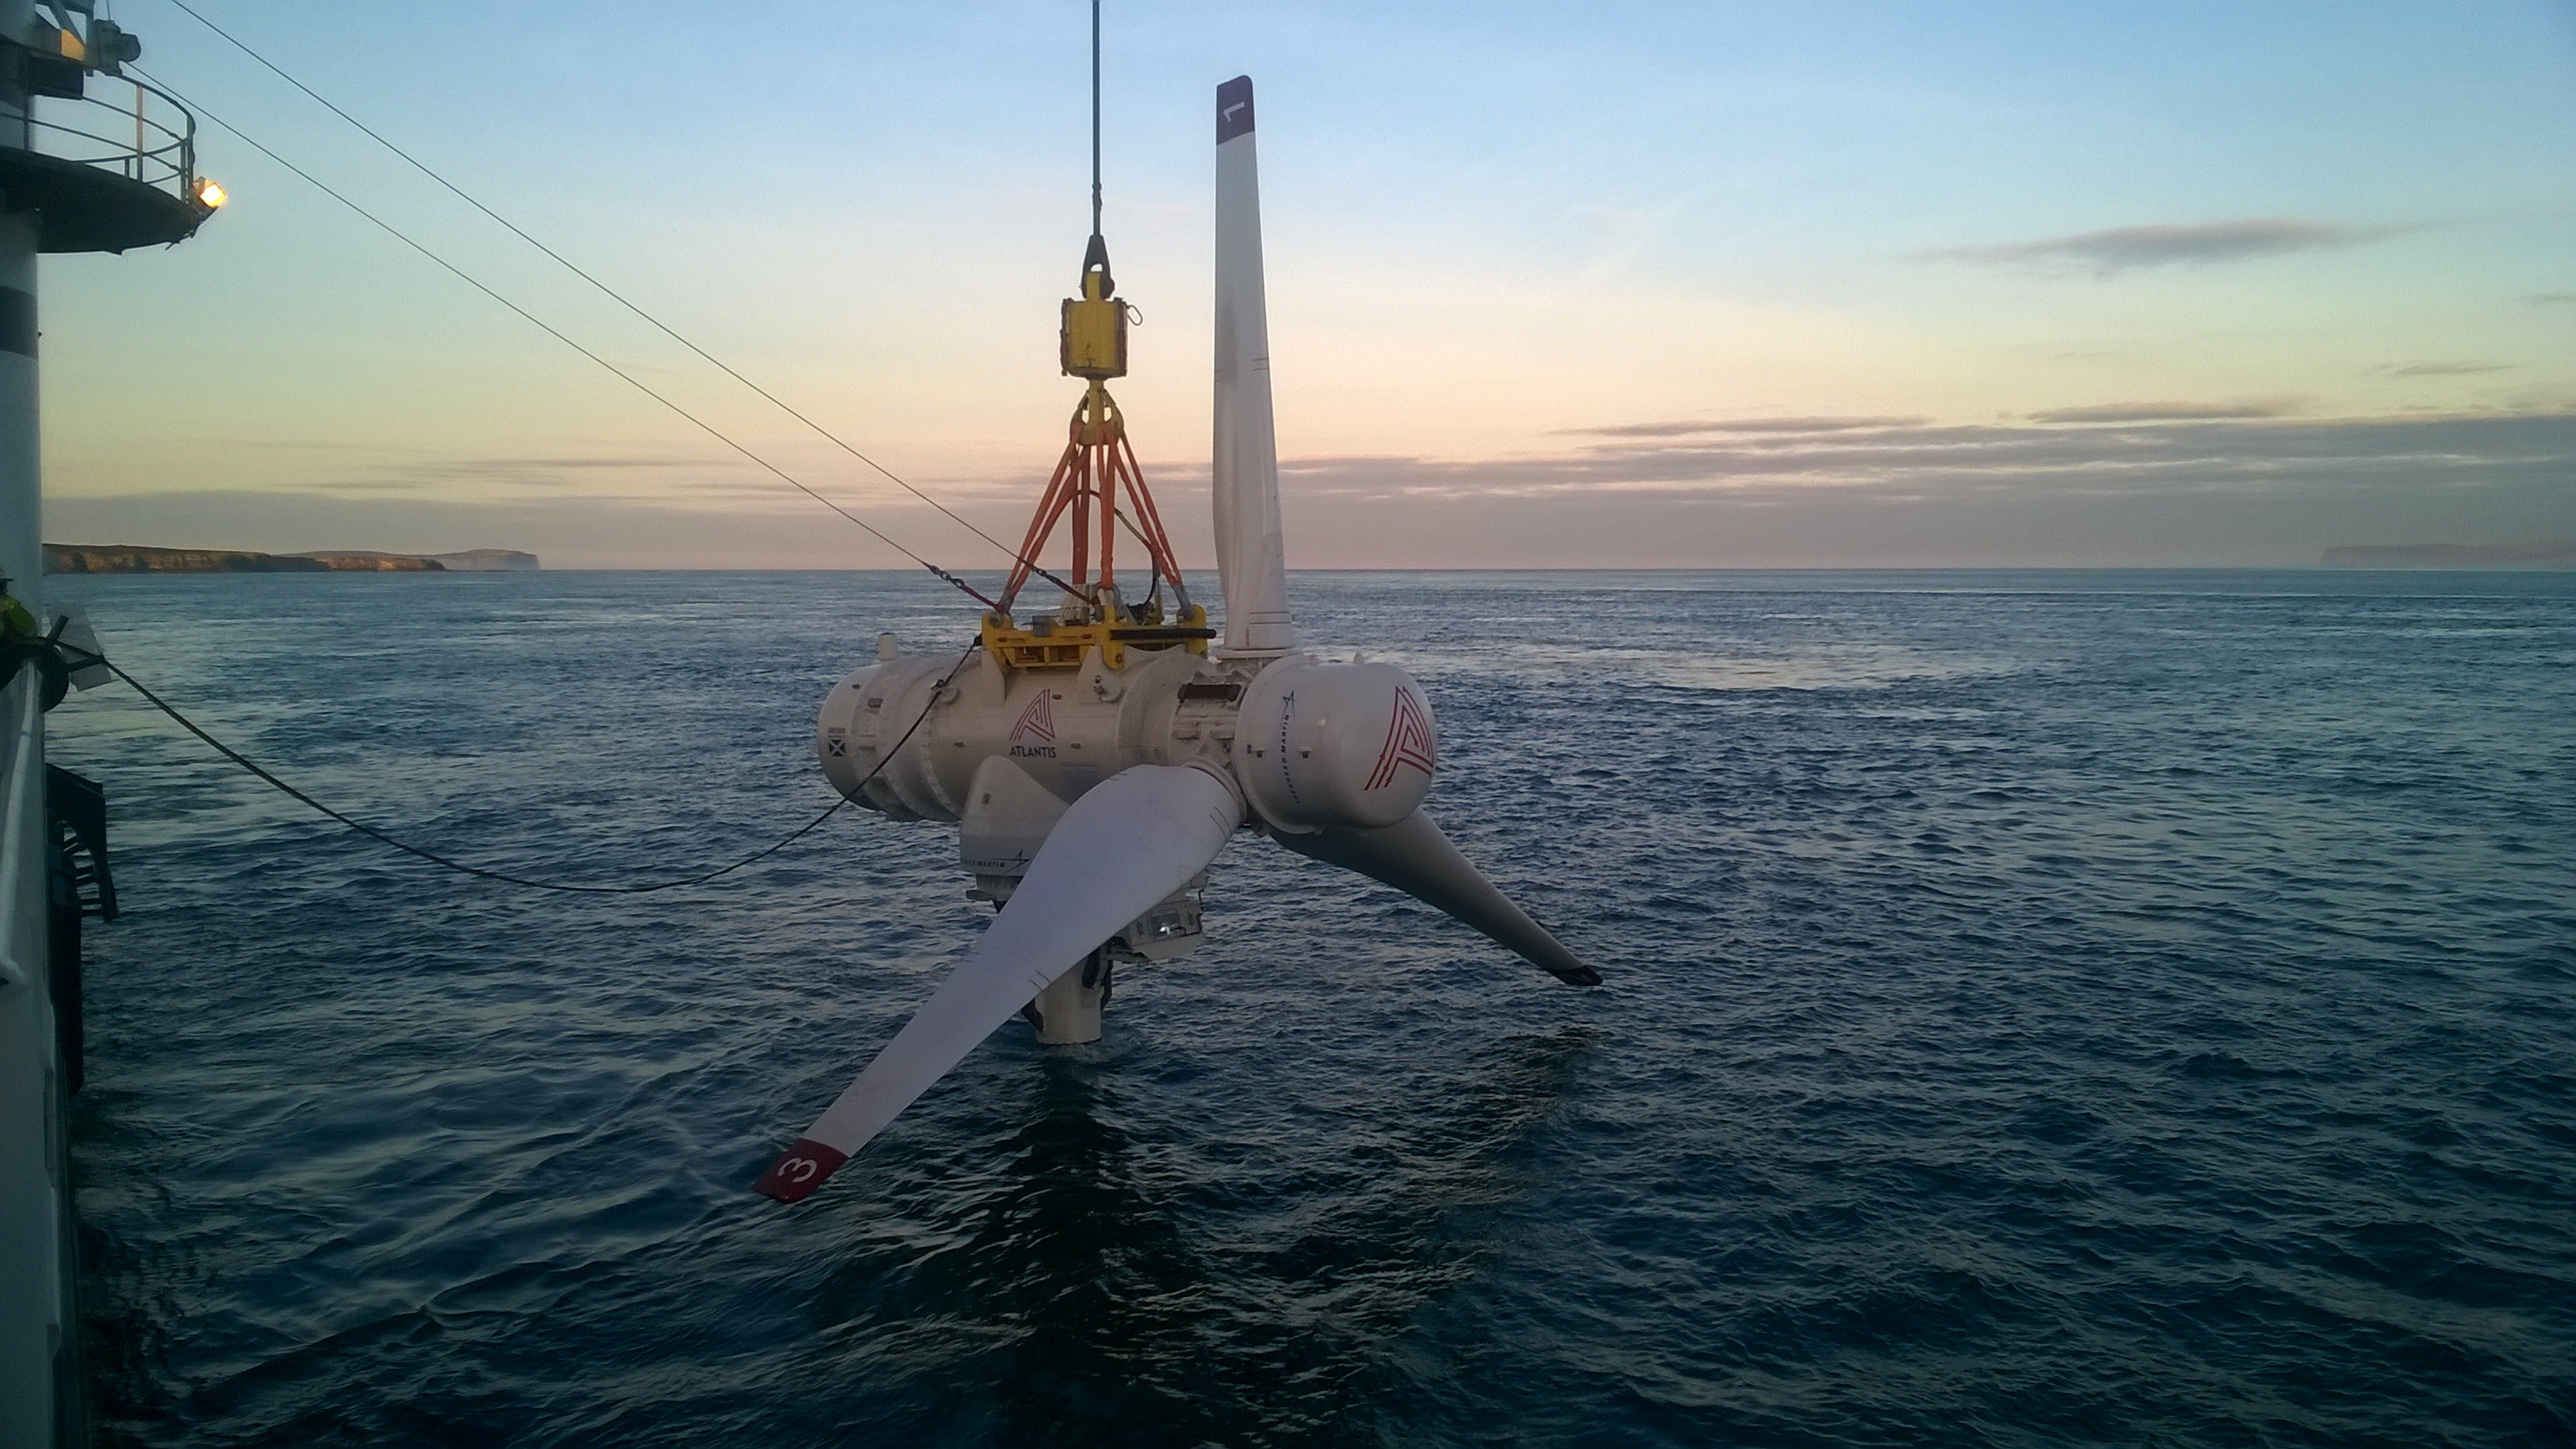 The MeyGen development in the Pentland Firth exported more than 13.8 gigawatt hours (GWh) in 2019, which represents the longest period of uninterrupted generation ever achieved for a multi-megawatt tidal turbine.